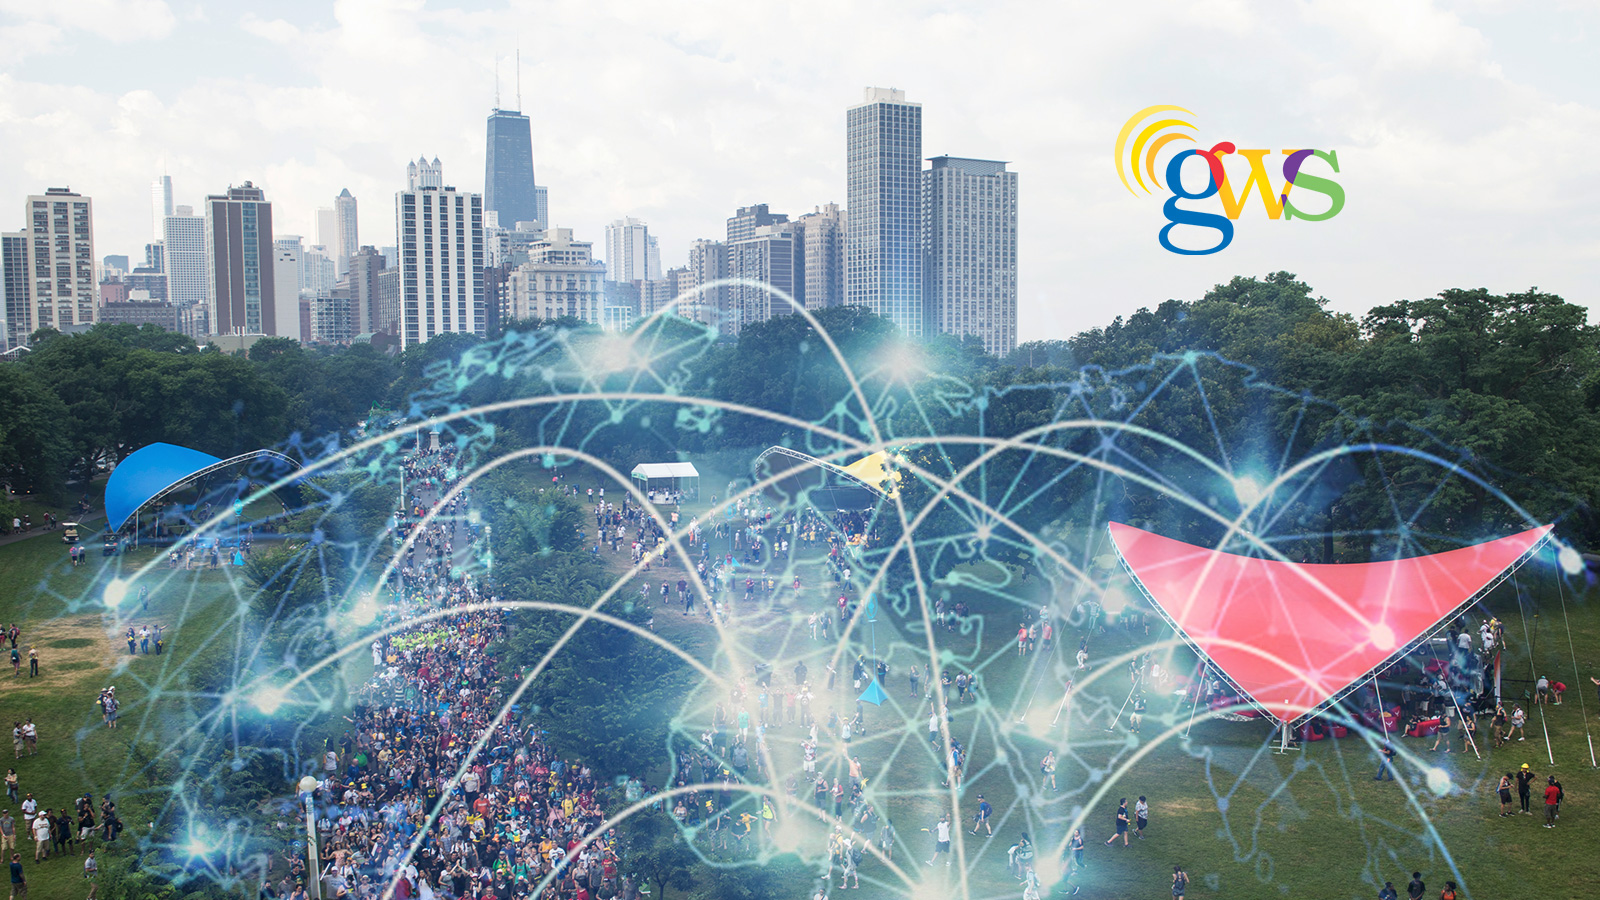 Reliable Mobile Networks Connected at Pokémon Go Fest 2019 in Chicago